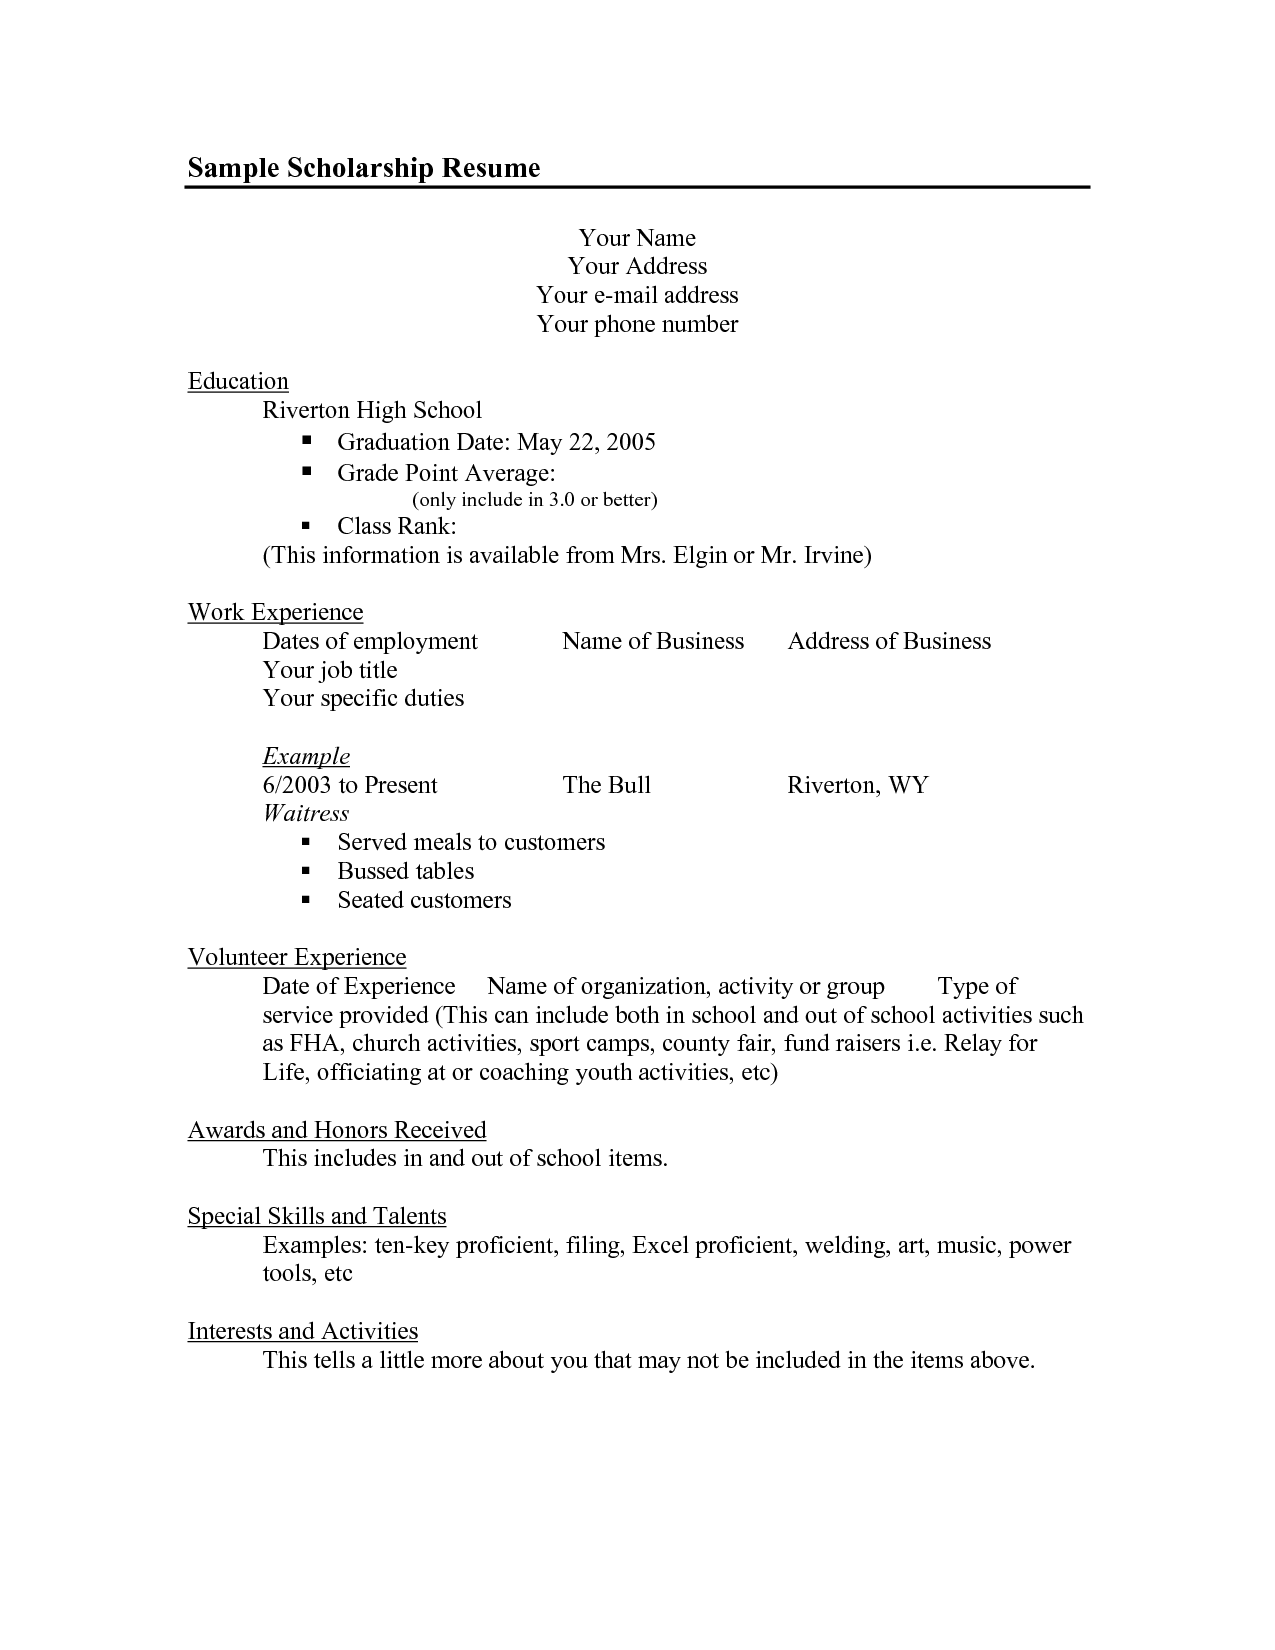 scholarship resume templates sample scholarship resume graduation date may 22 2005